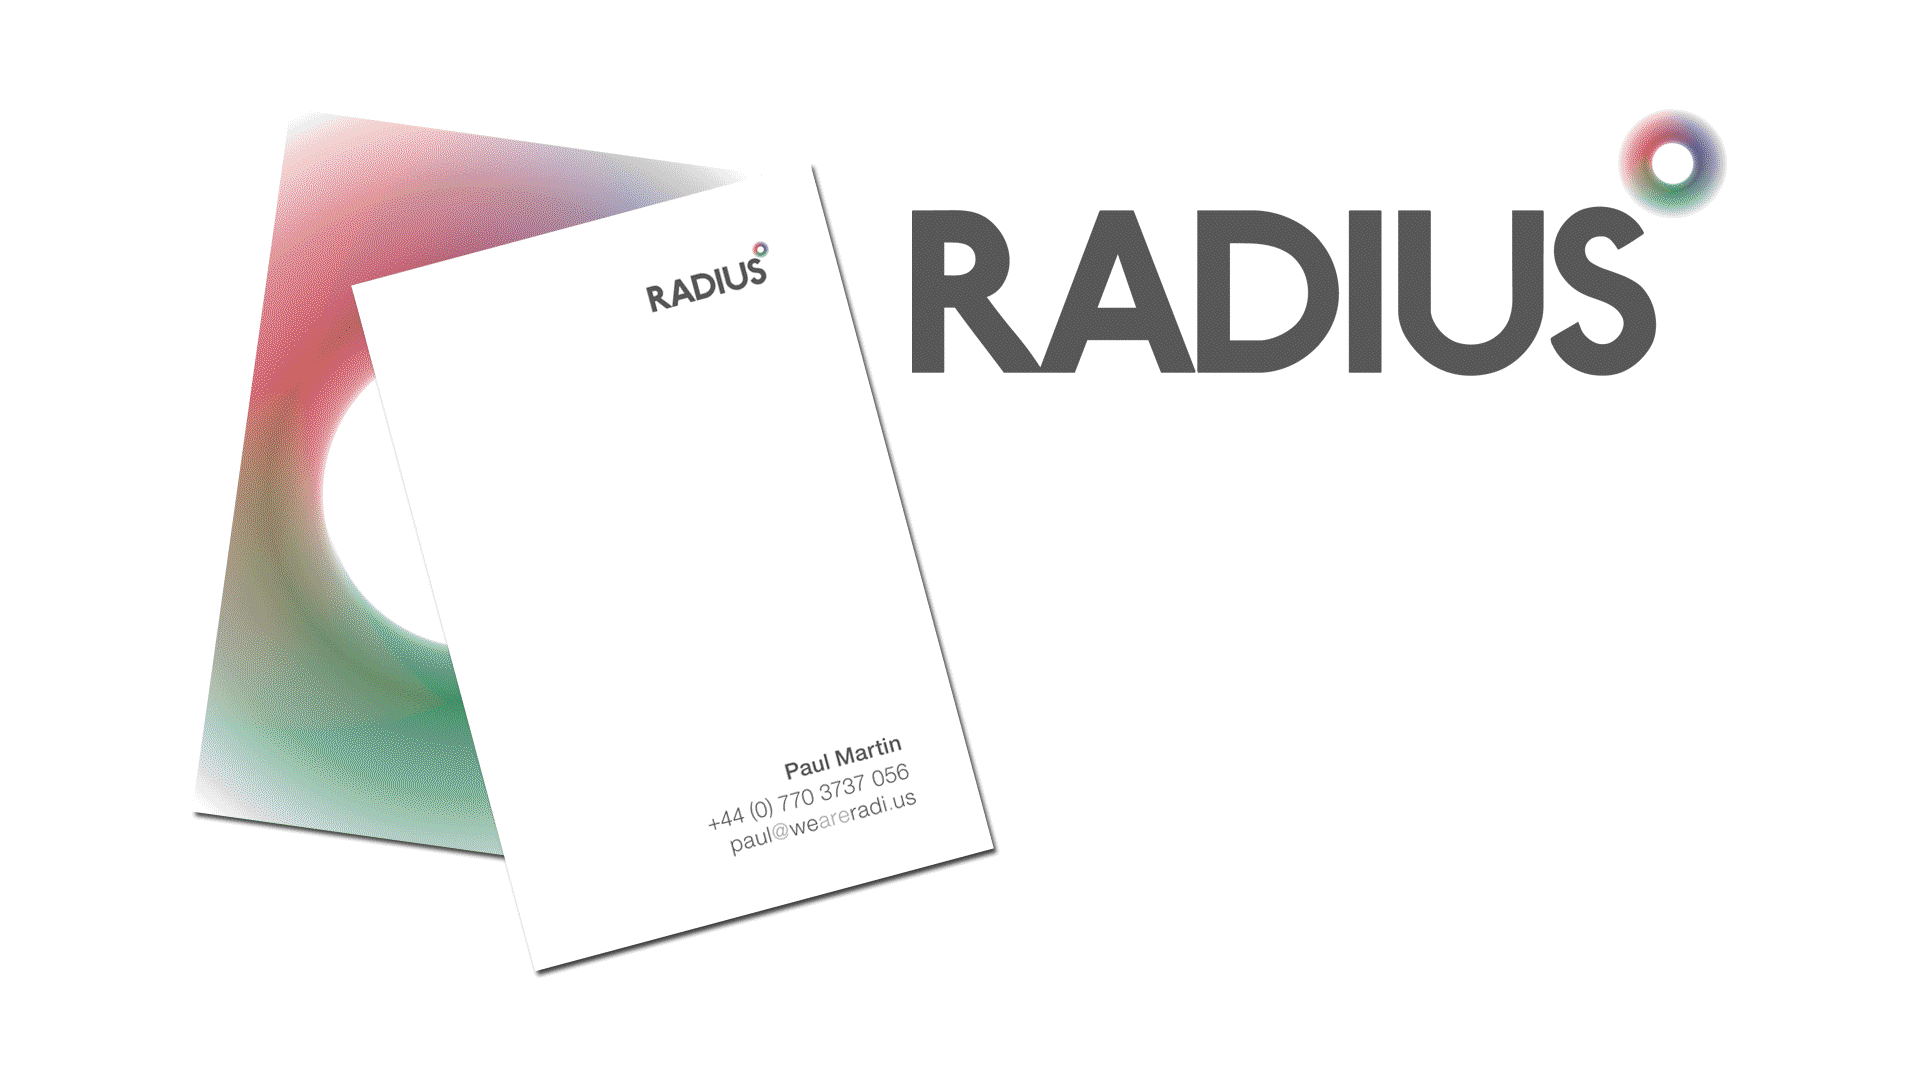 Radius Branding Identity and Business Card